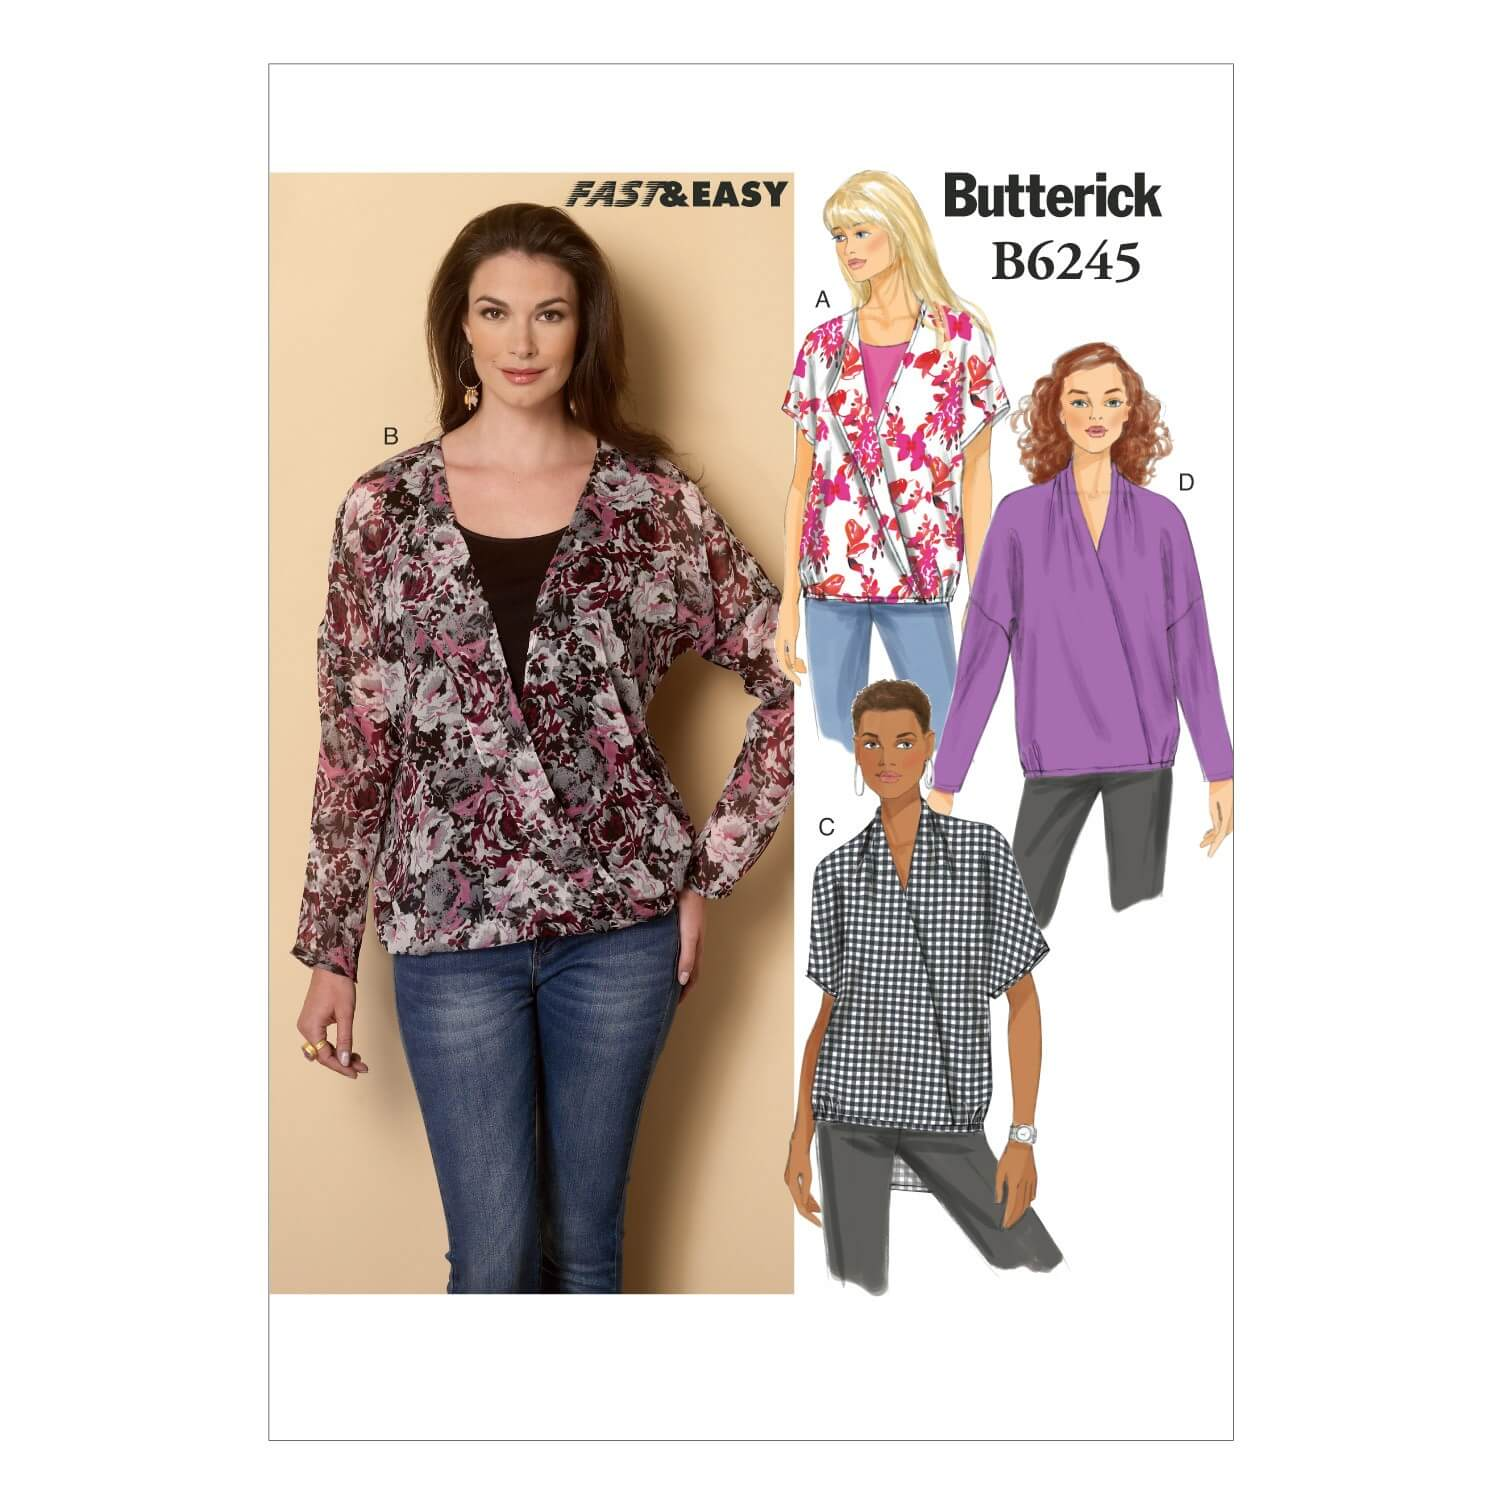 Butterick Sewing Pattern 6245 Misses' Pullover top